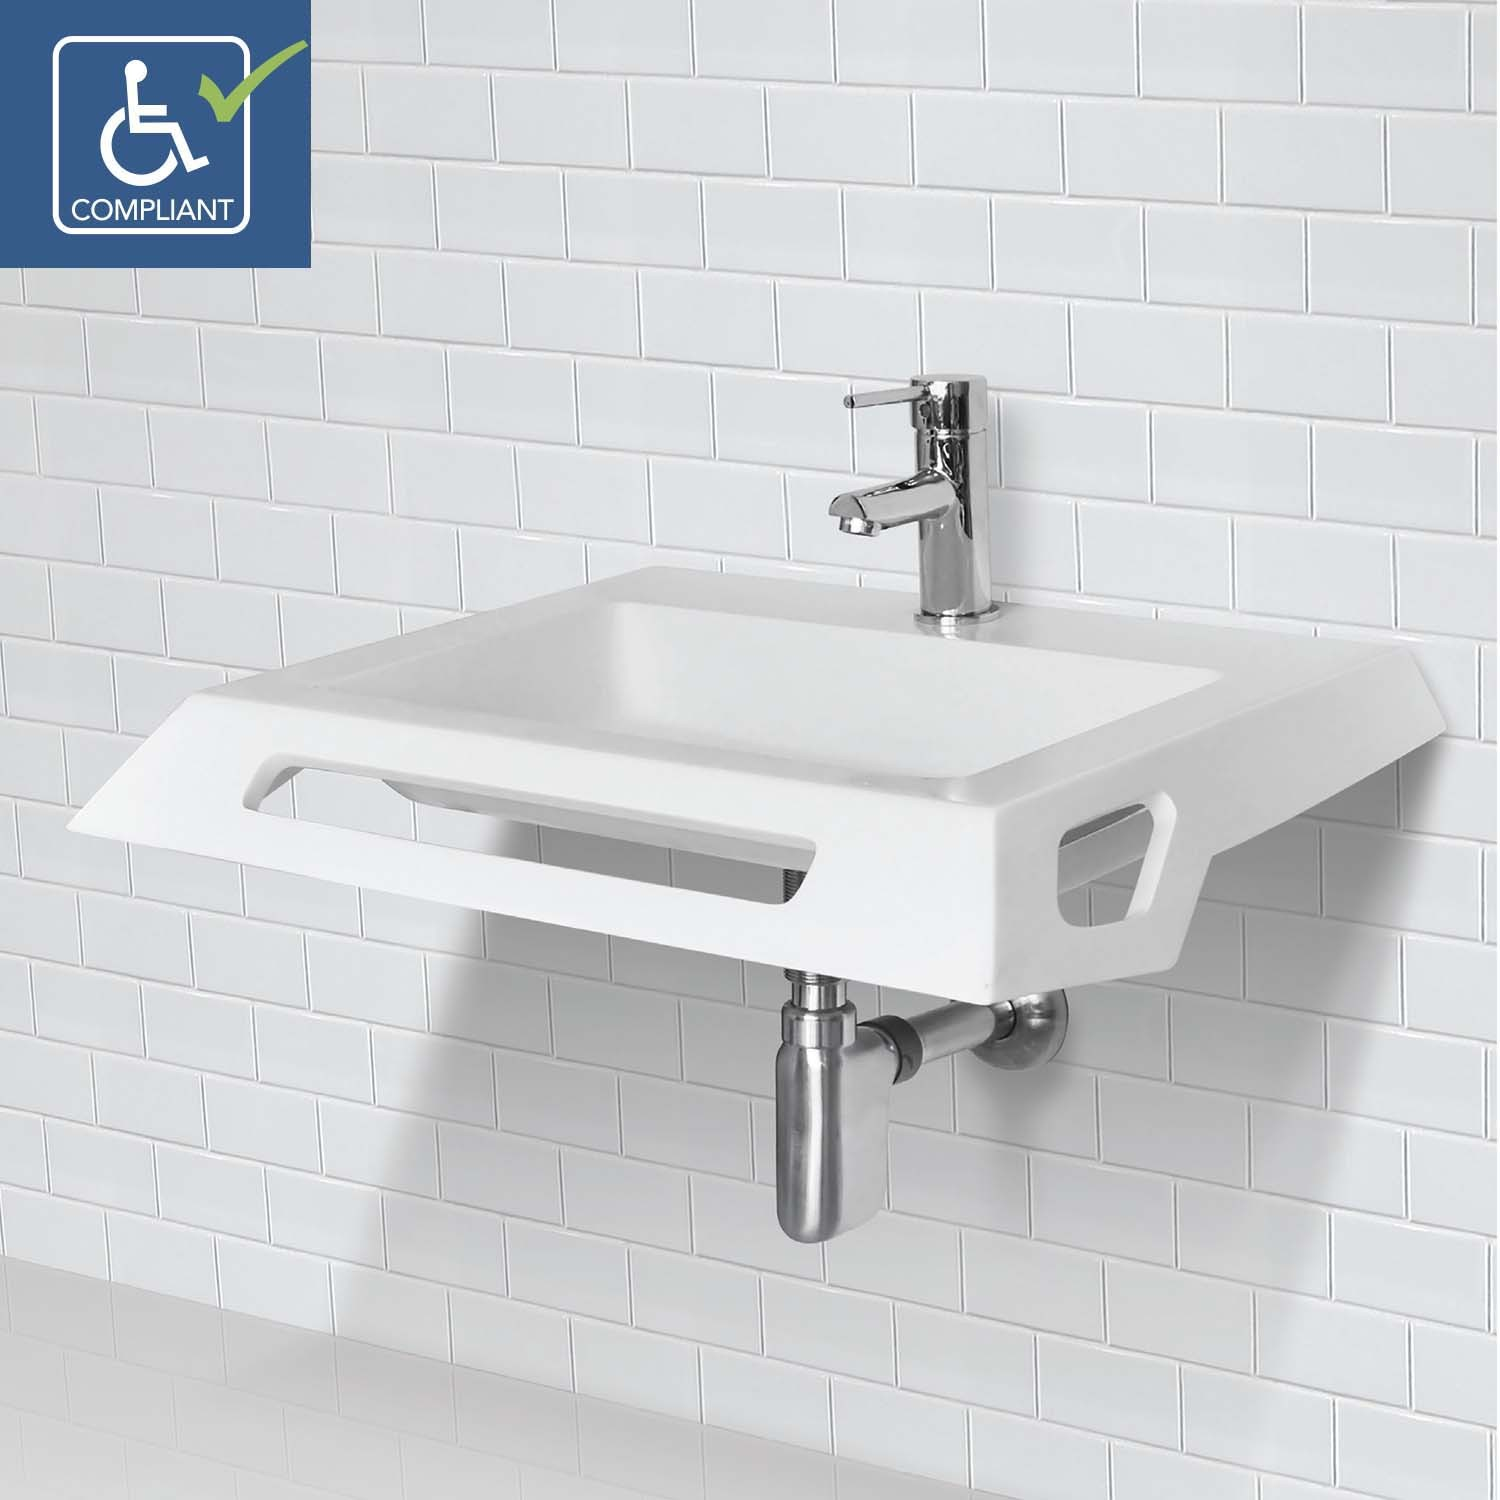 Decolav Lexine 1833 Ssa Solid Surface Ada Compliant Wall